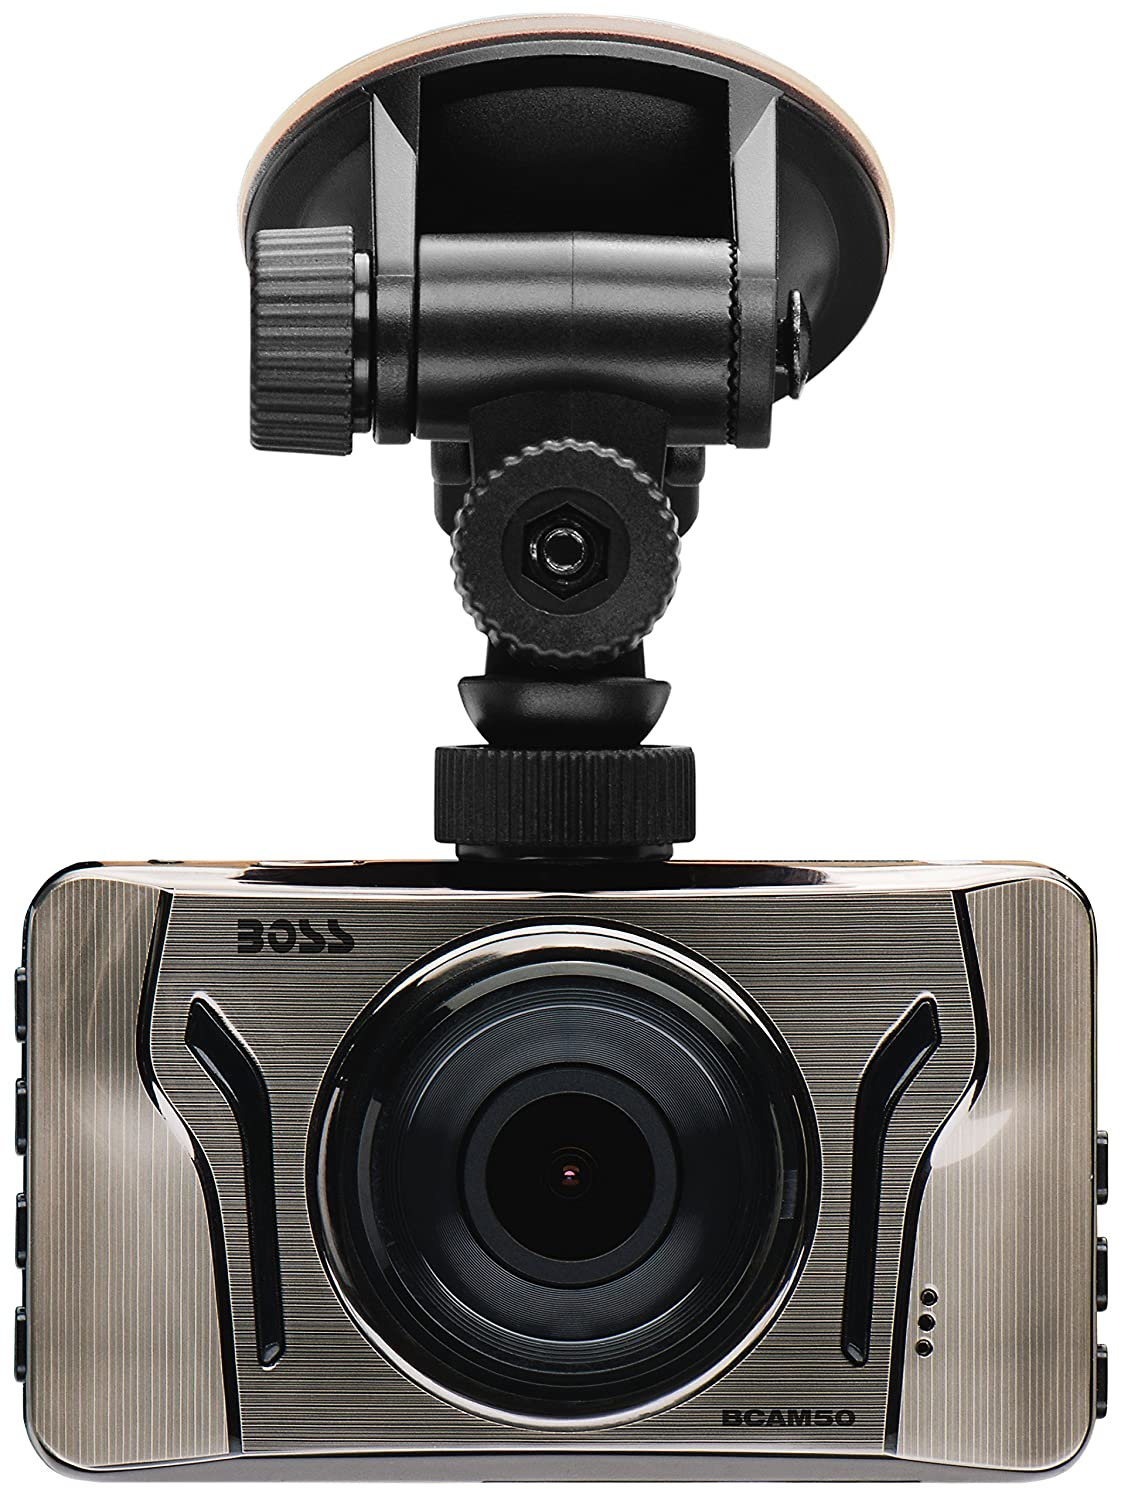 BOSS Audio BCAM50 Car DVR System Featuring a 3 Inch Screen and and included 8GB SD Card